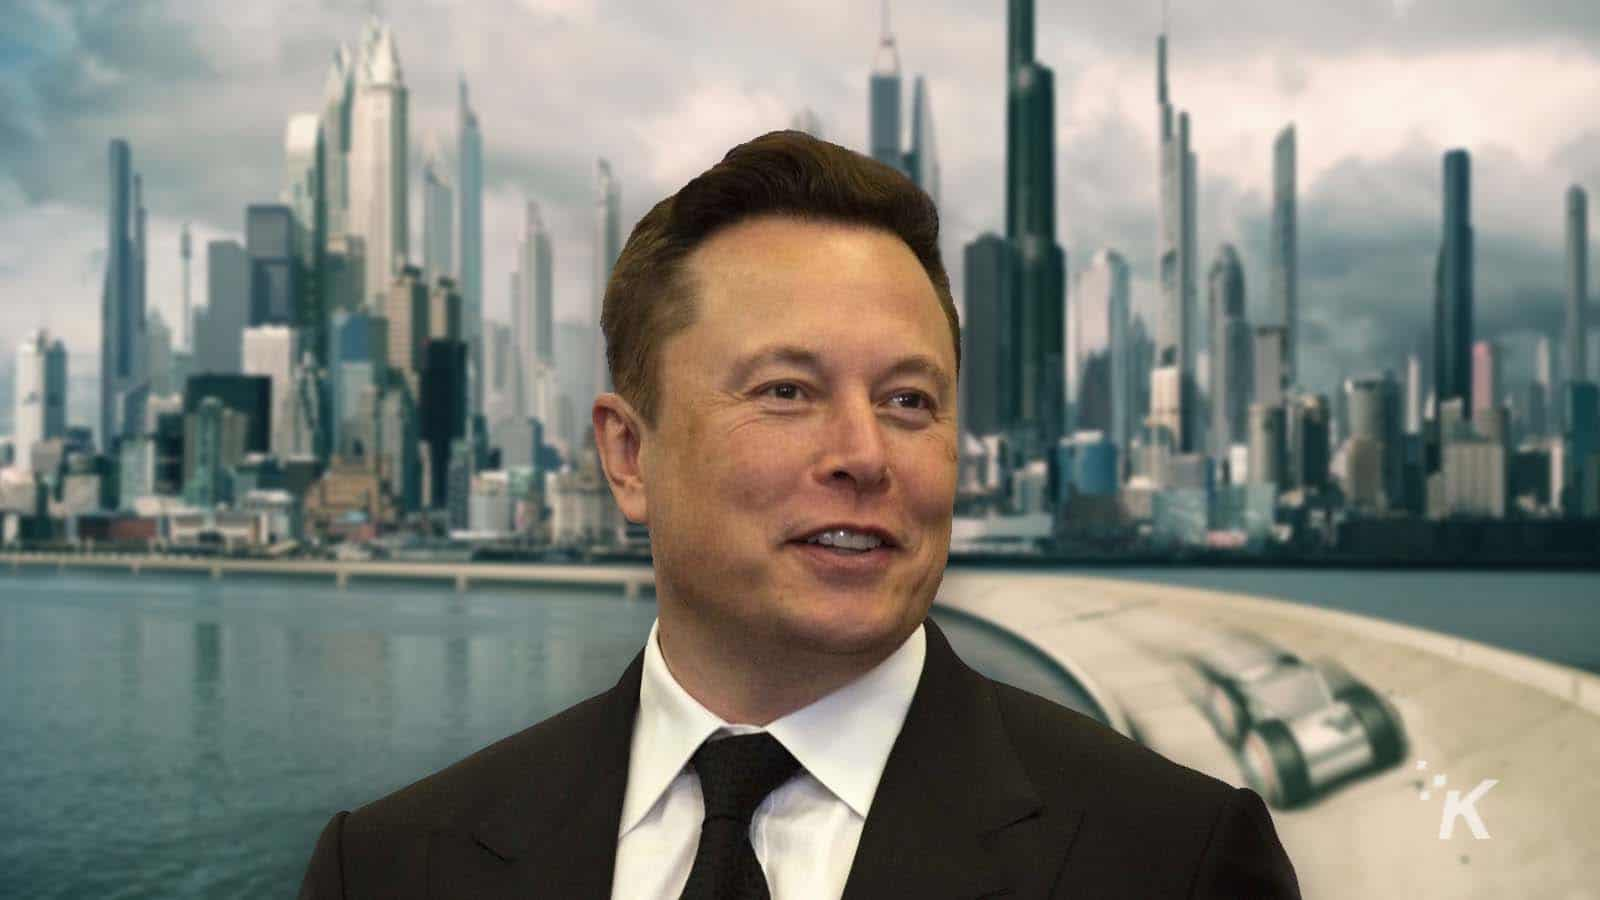 elon musk with futuristic city as background